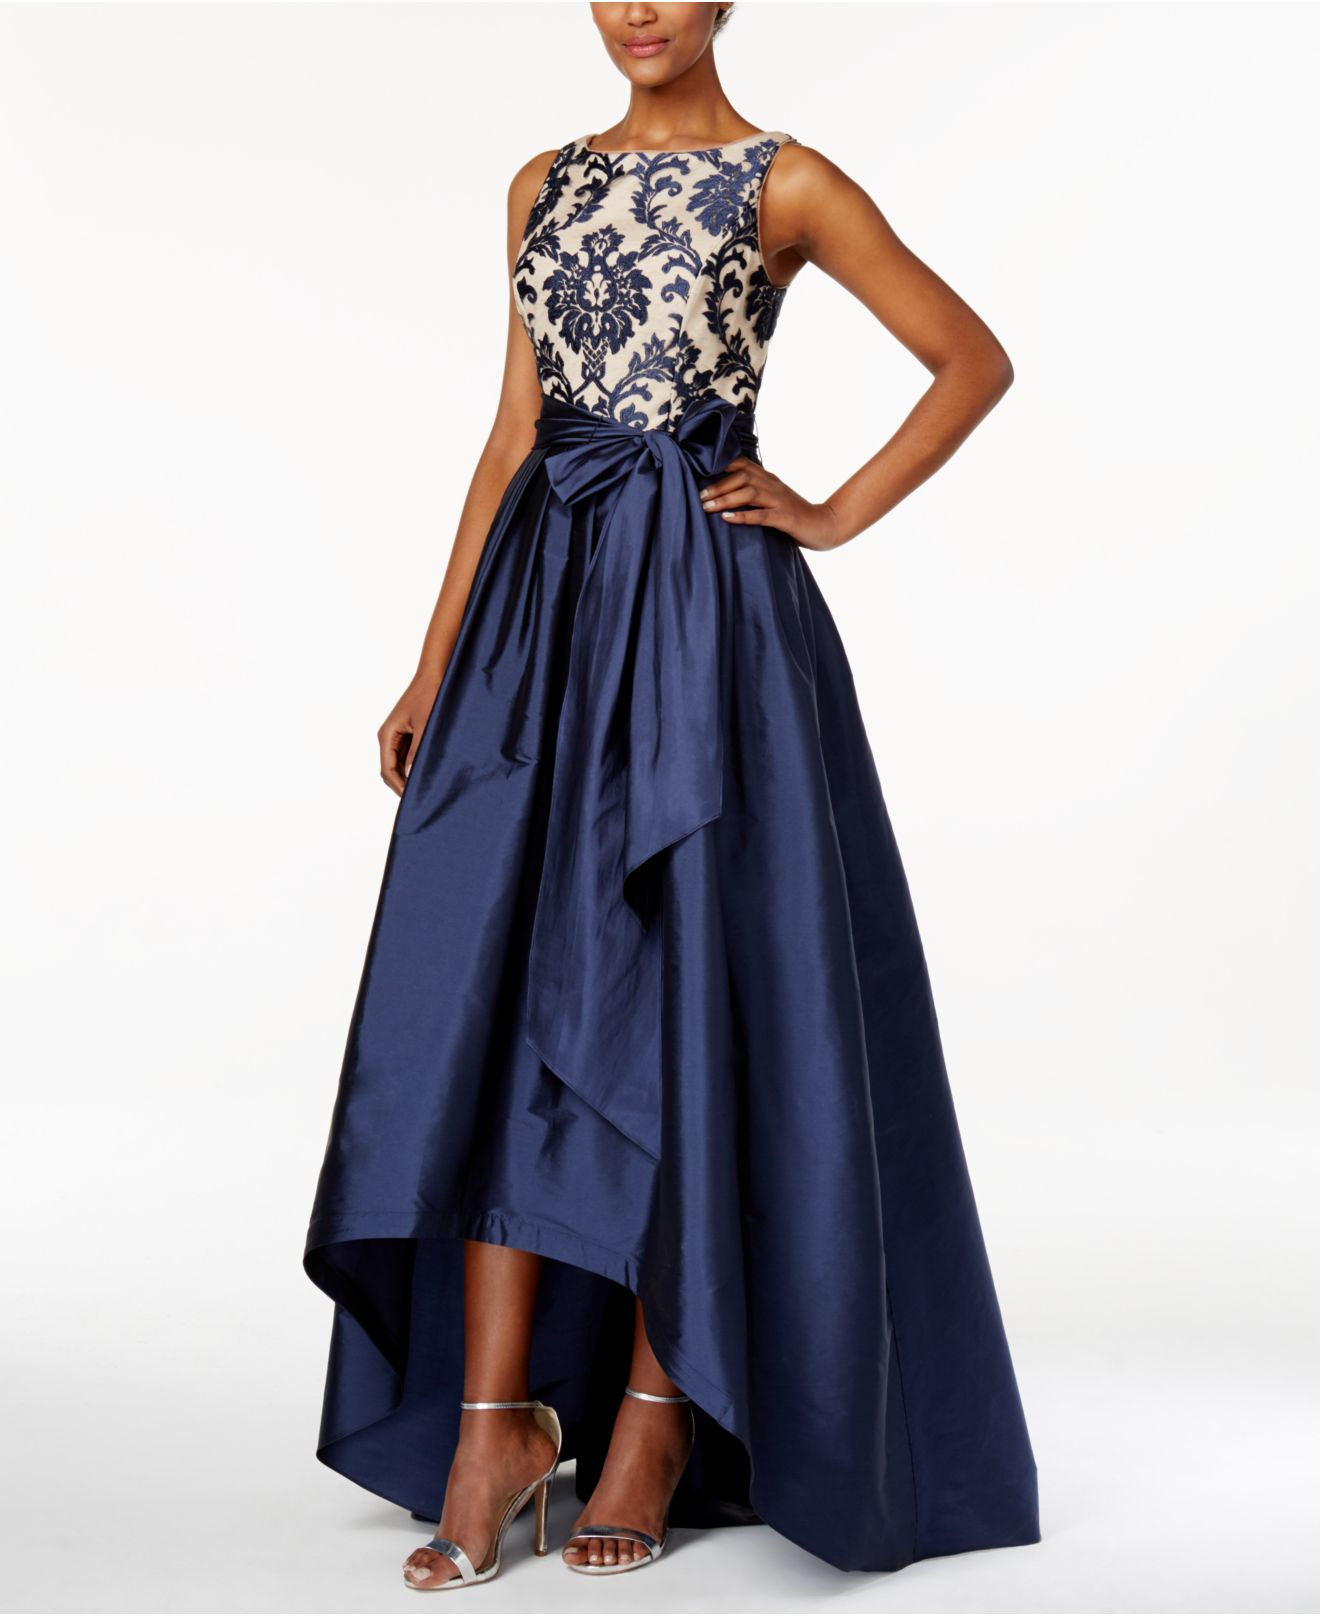 Macys Navy Blue Dresses: Adrianna Papell Plus Size Embroidered-lace Tafetta Gown In